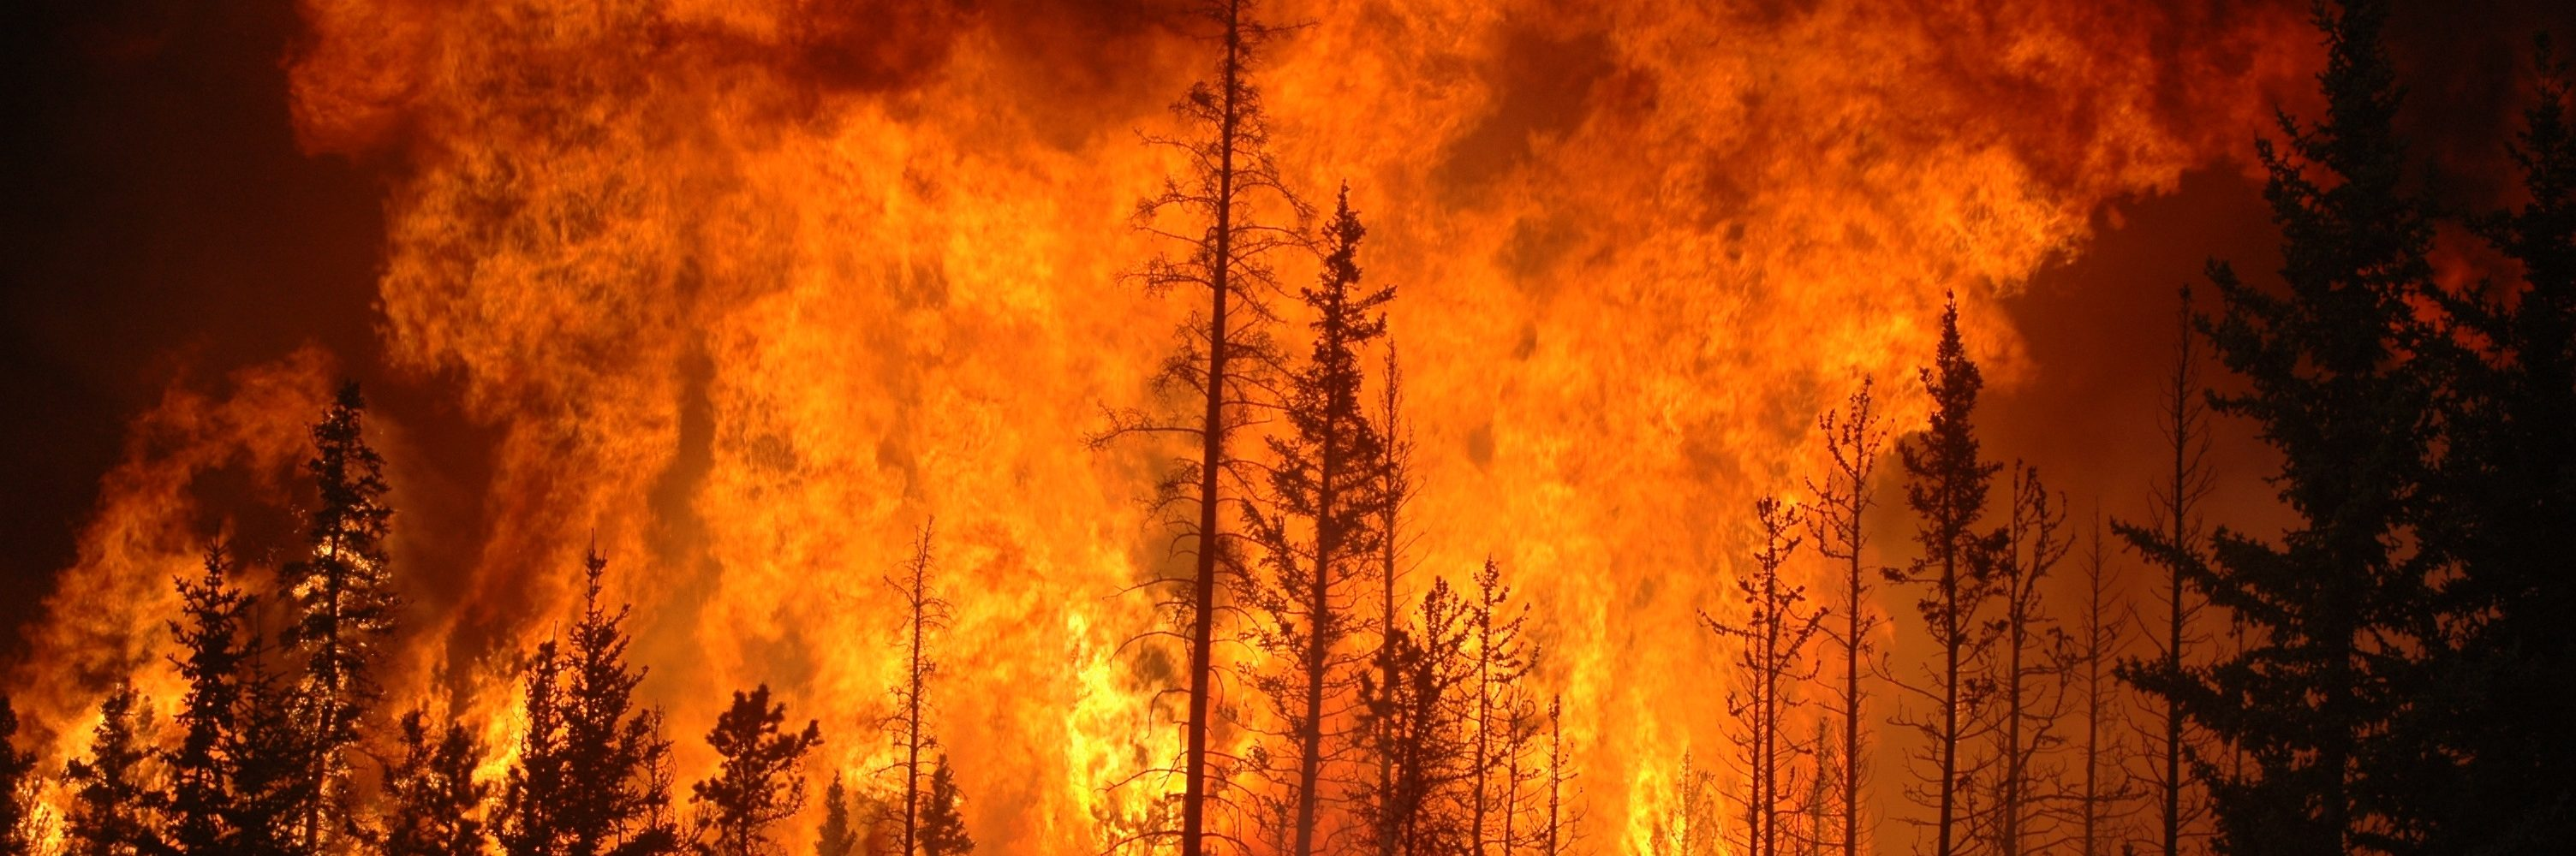 Assistance to members affected by the BC Wildfires